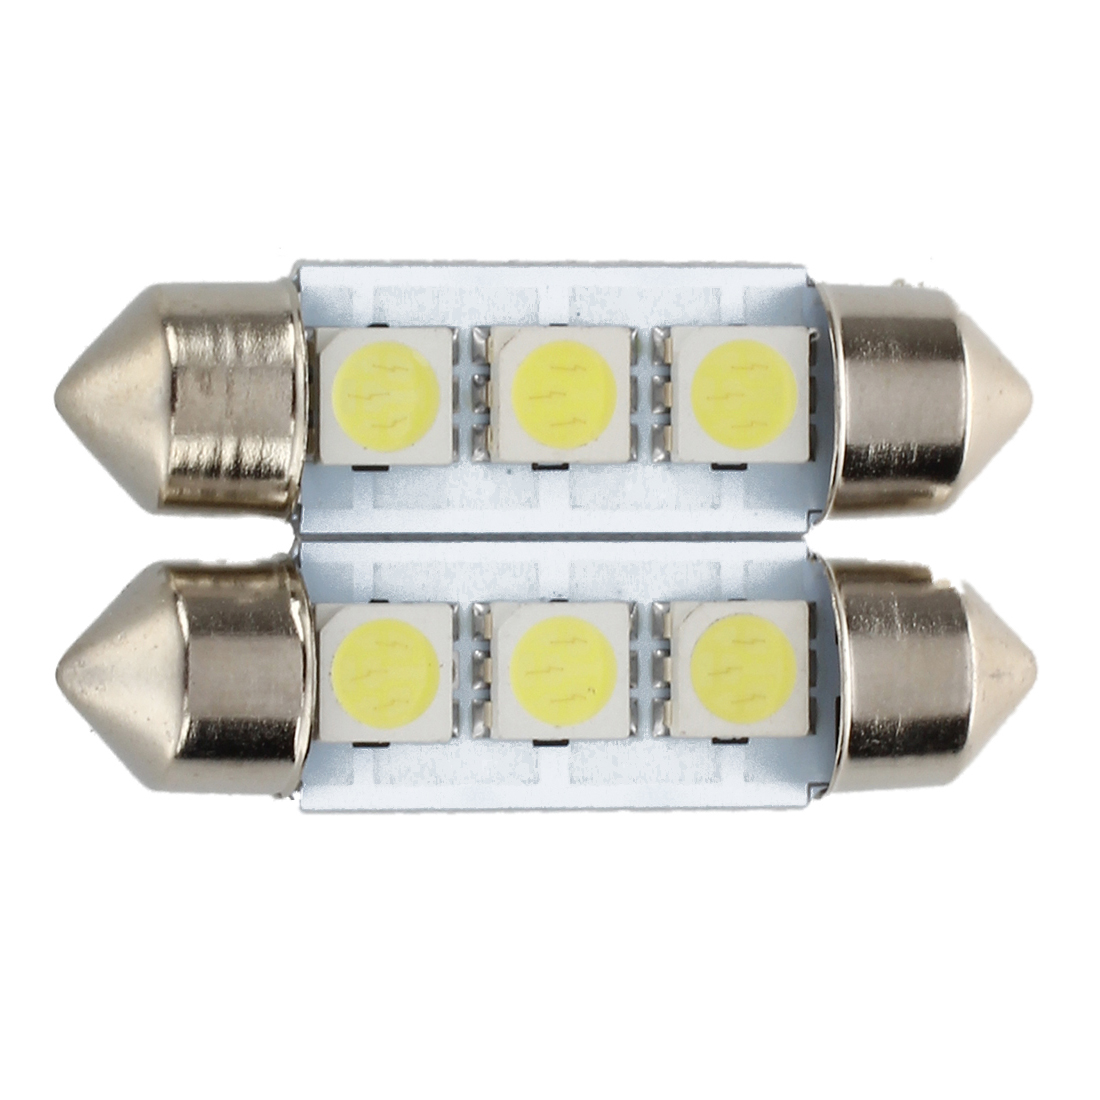 Wholesales 2x C5W 3 LED SMD 5050 36mm Xenon White Bulb Plate Shuttle Festoons Dome Ceiling Lamp Car Light